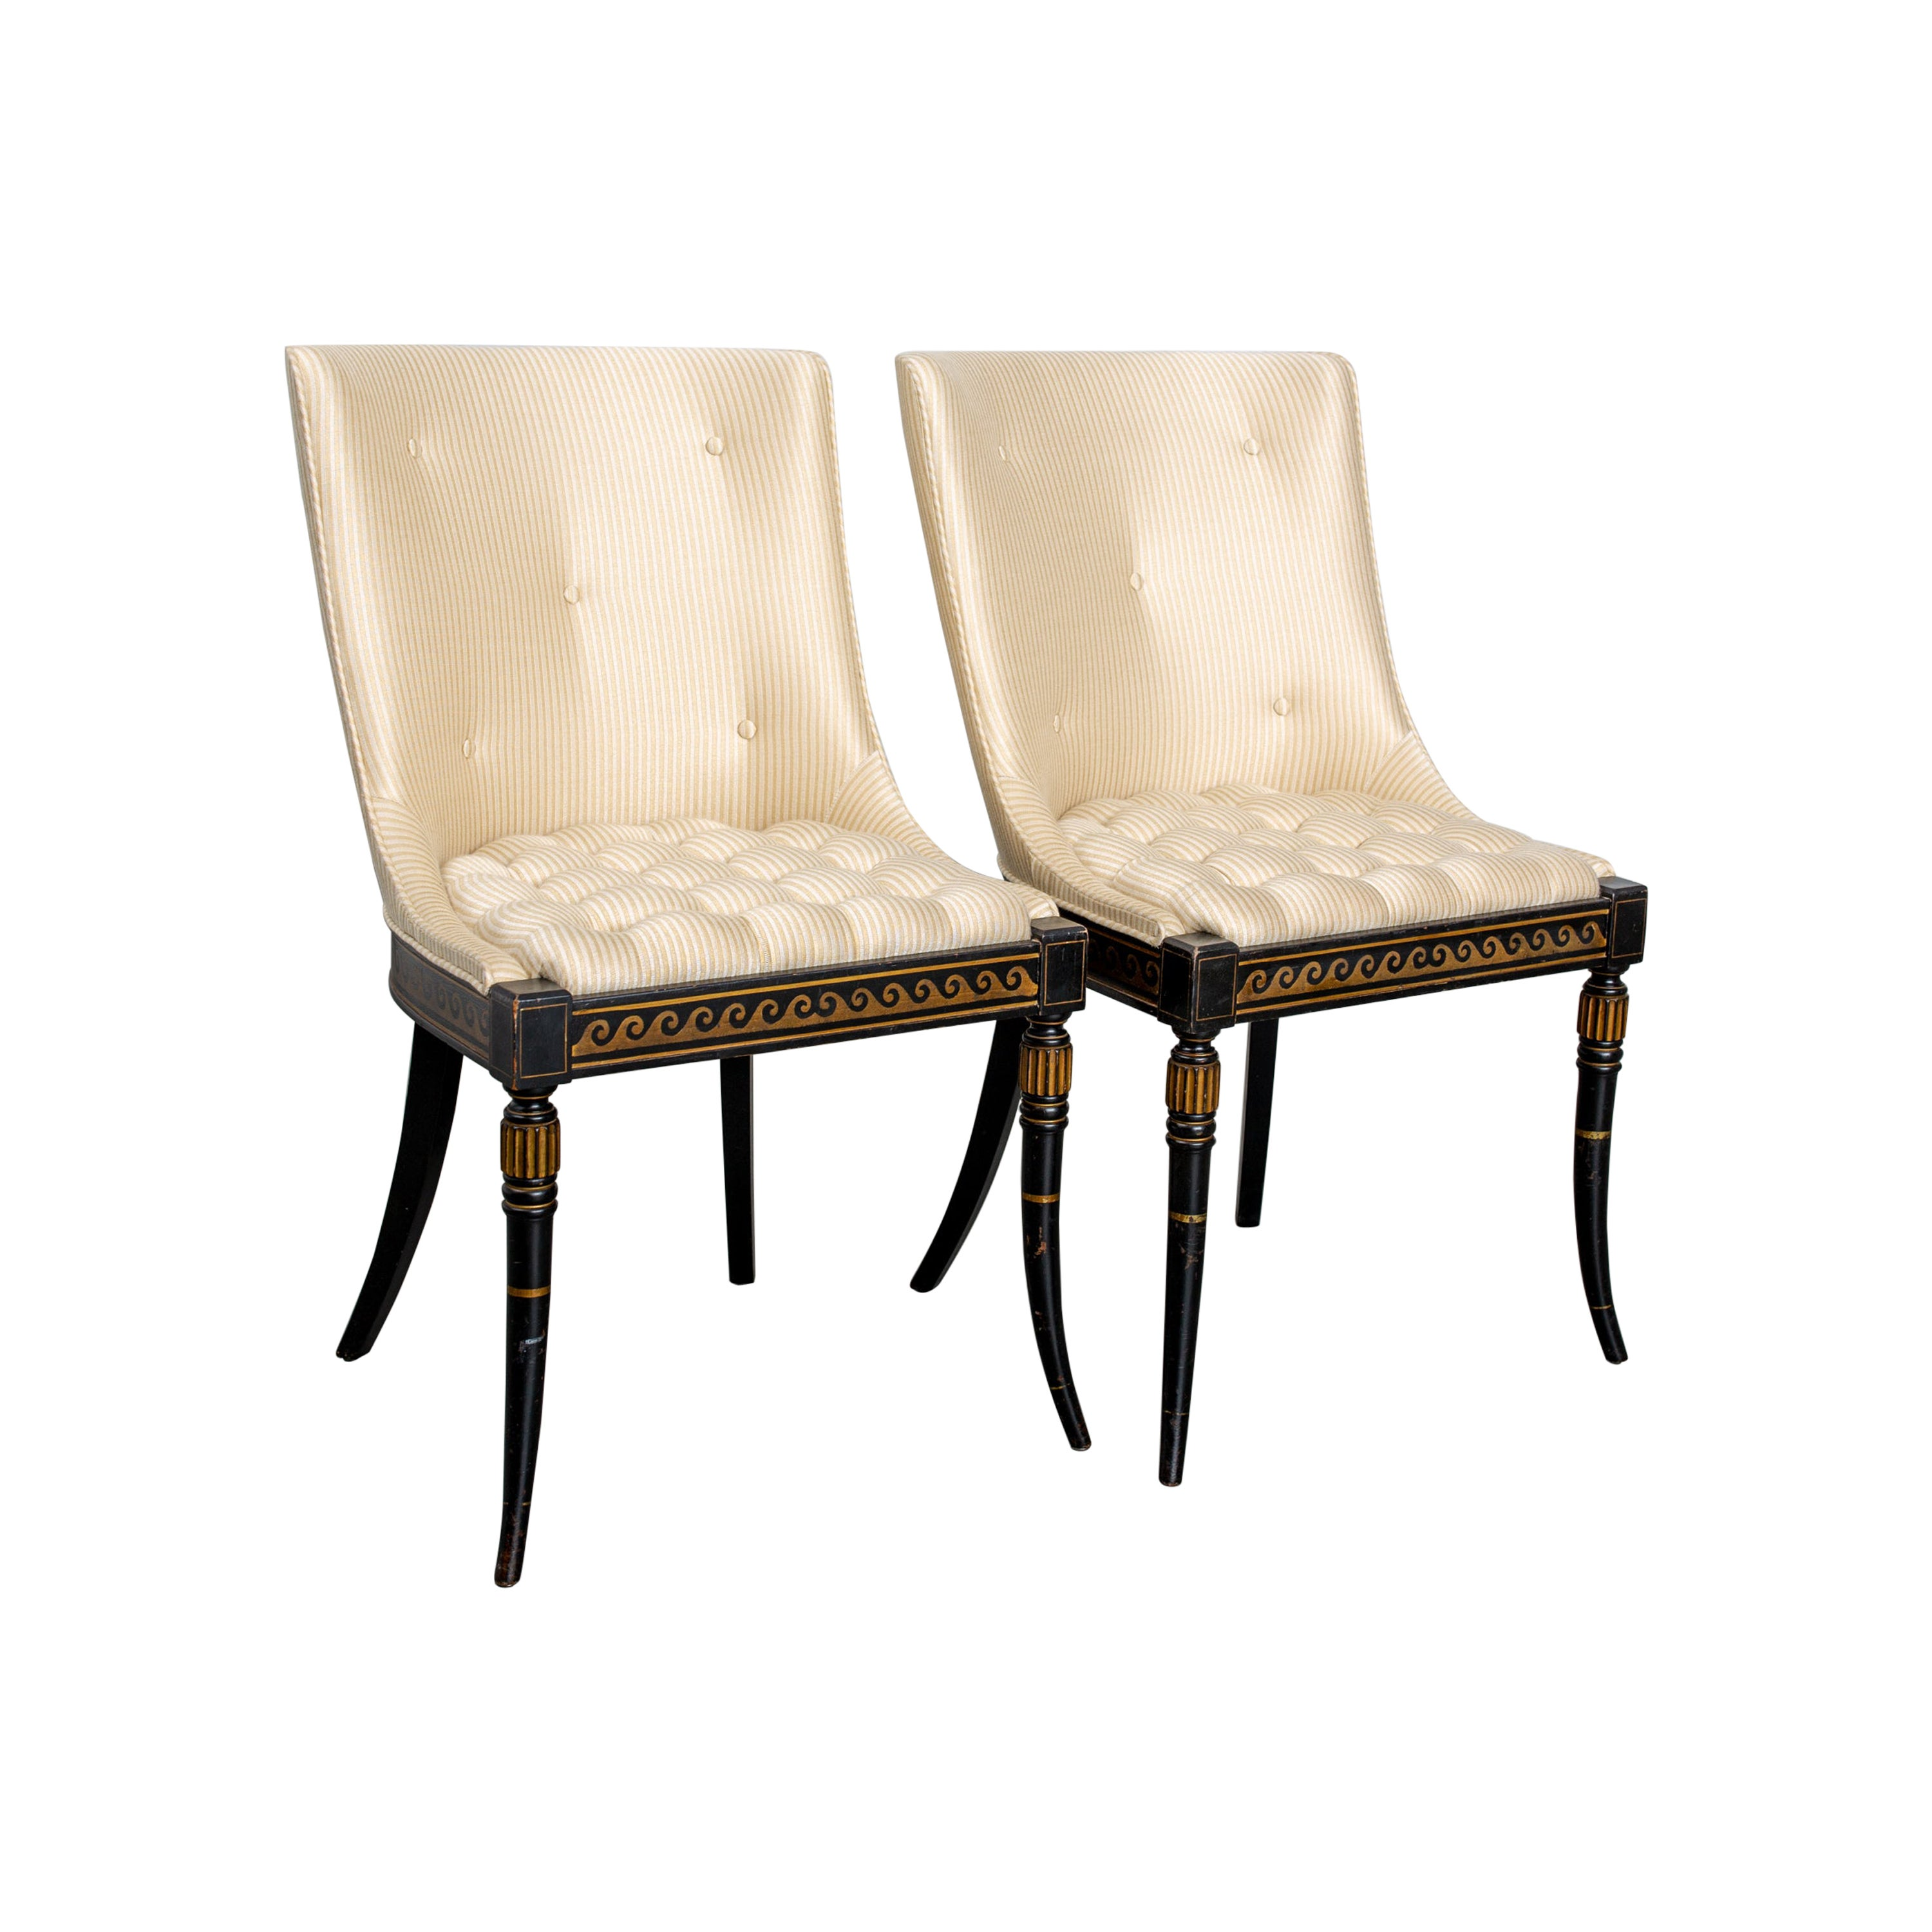 Pair of Regency Style Button-Tufted Side Chairs